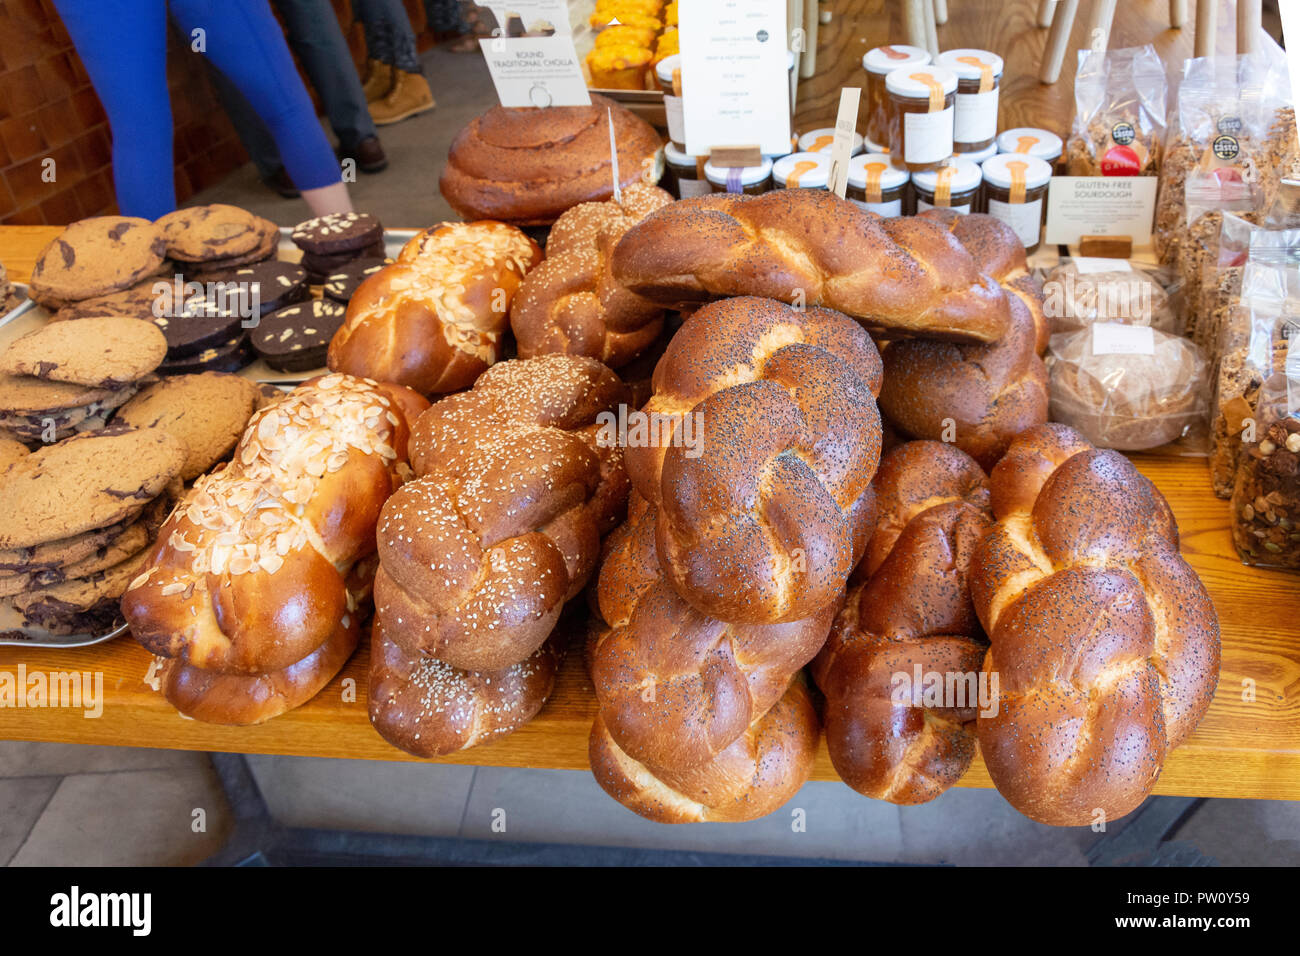 Sélection de pain et de biscuits en pâtisserie, Salusbury Road, Queen's Park, London Borough of Brent, Greater London, Angleterre, Royaume-Uni Photo Stock